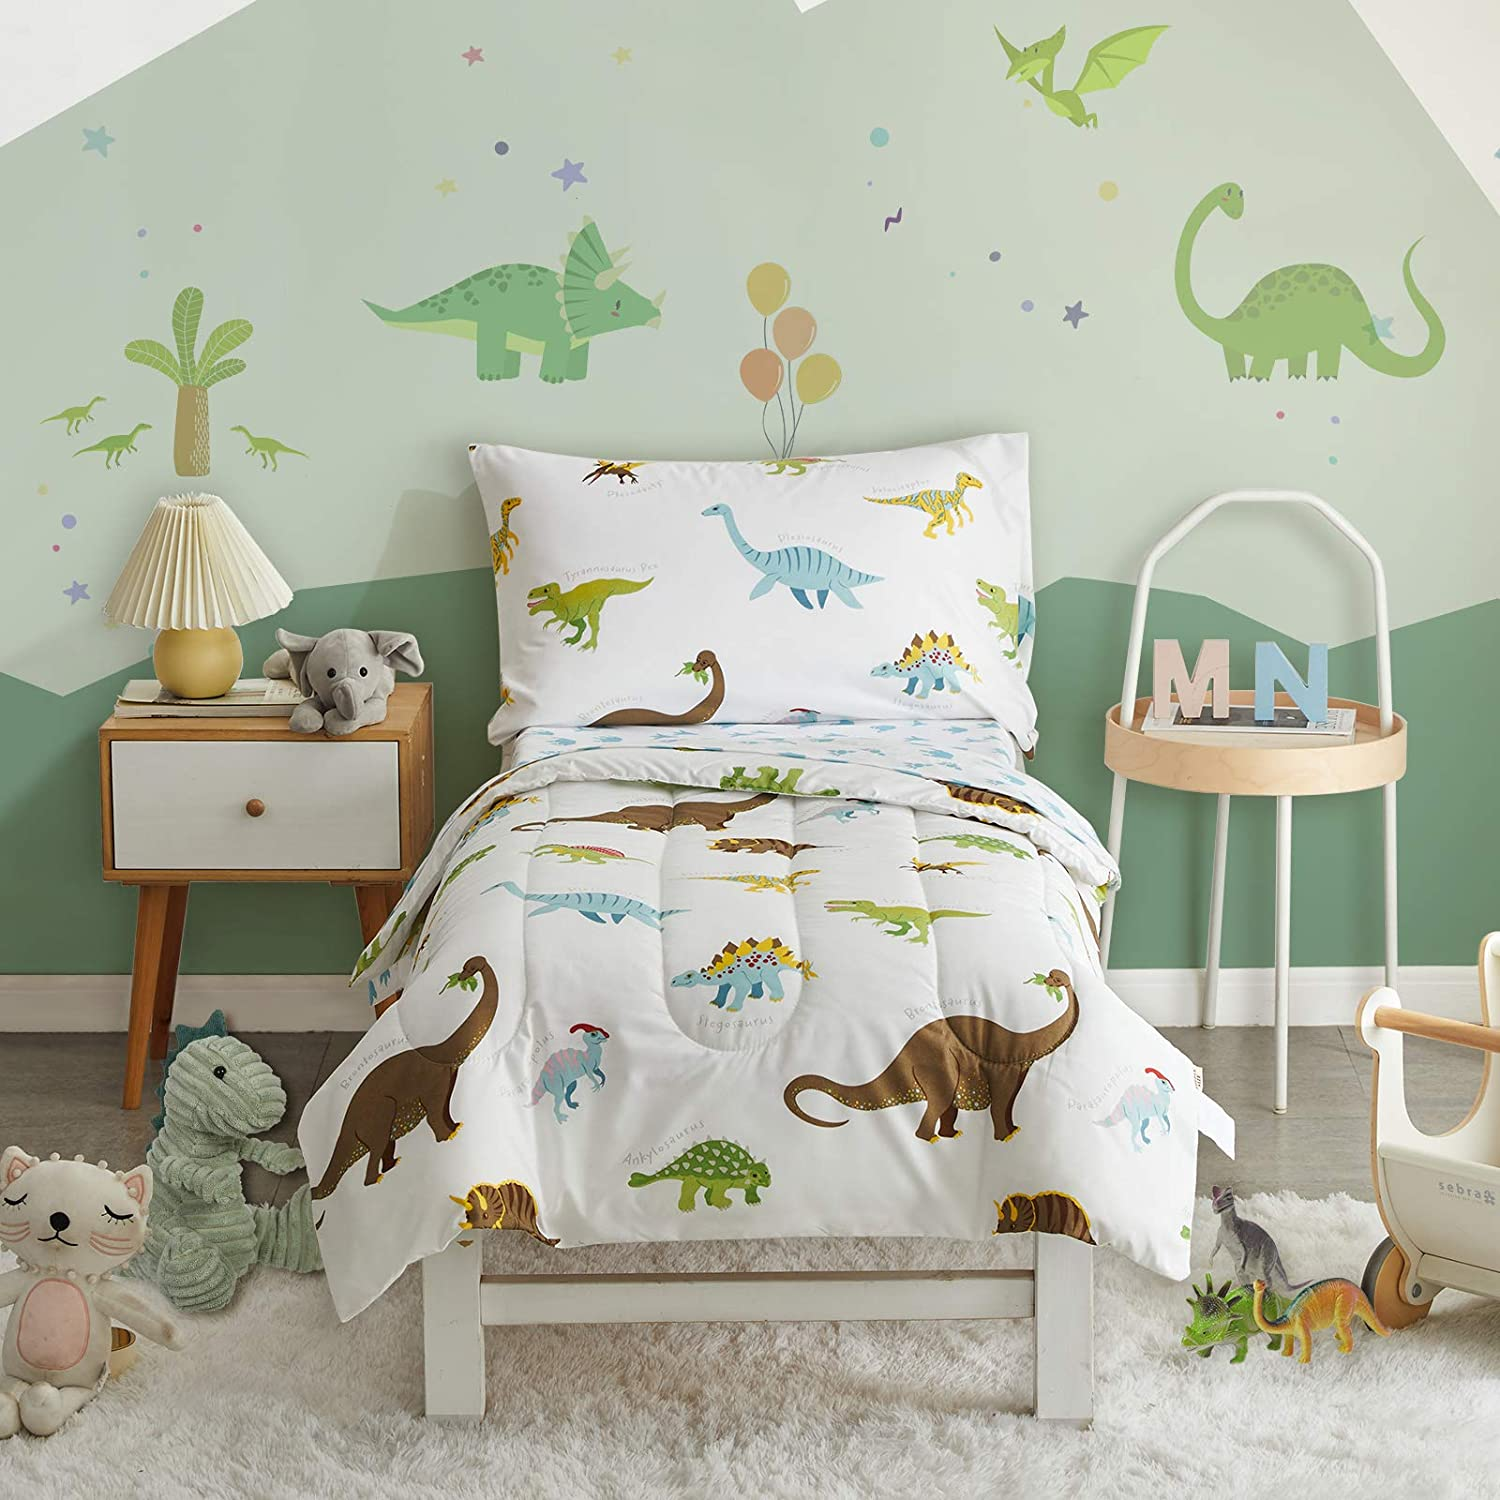 Uozzi Bedding 4 Pieces Toddler Bedding Set Dinosaur White Includes Comforter, Flat Sheet, Fitted Sheet and Pillowcase